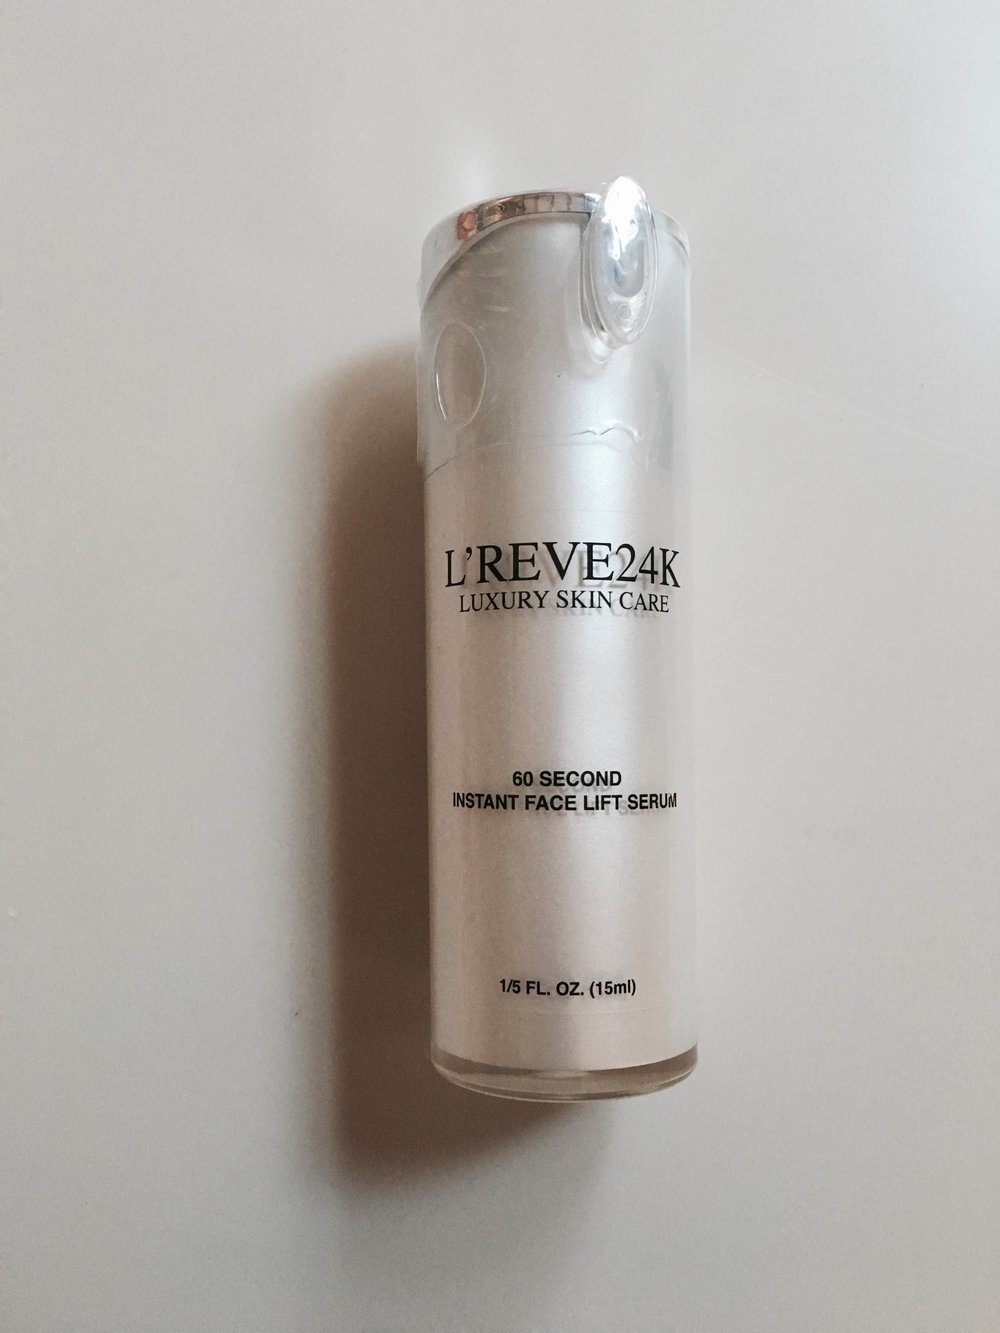 I love using this anti-age serum after I cleanse my face in the morning and before I apply my daily moisturizer. Within a few minutes I can notice a difference in my fine lines and creases, especially underneath my eyes! LOVE THIS PRODUCT.